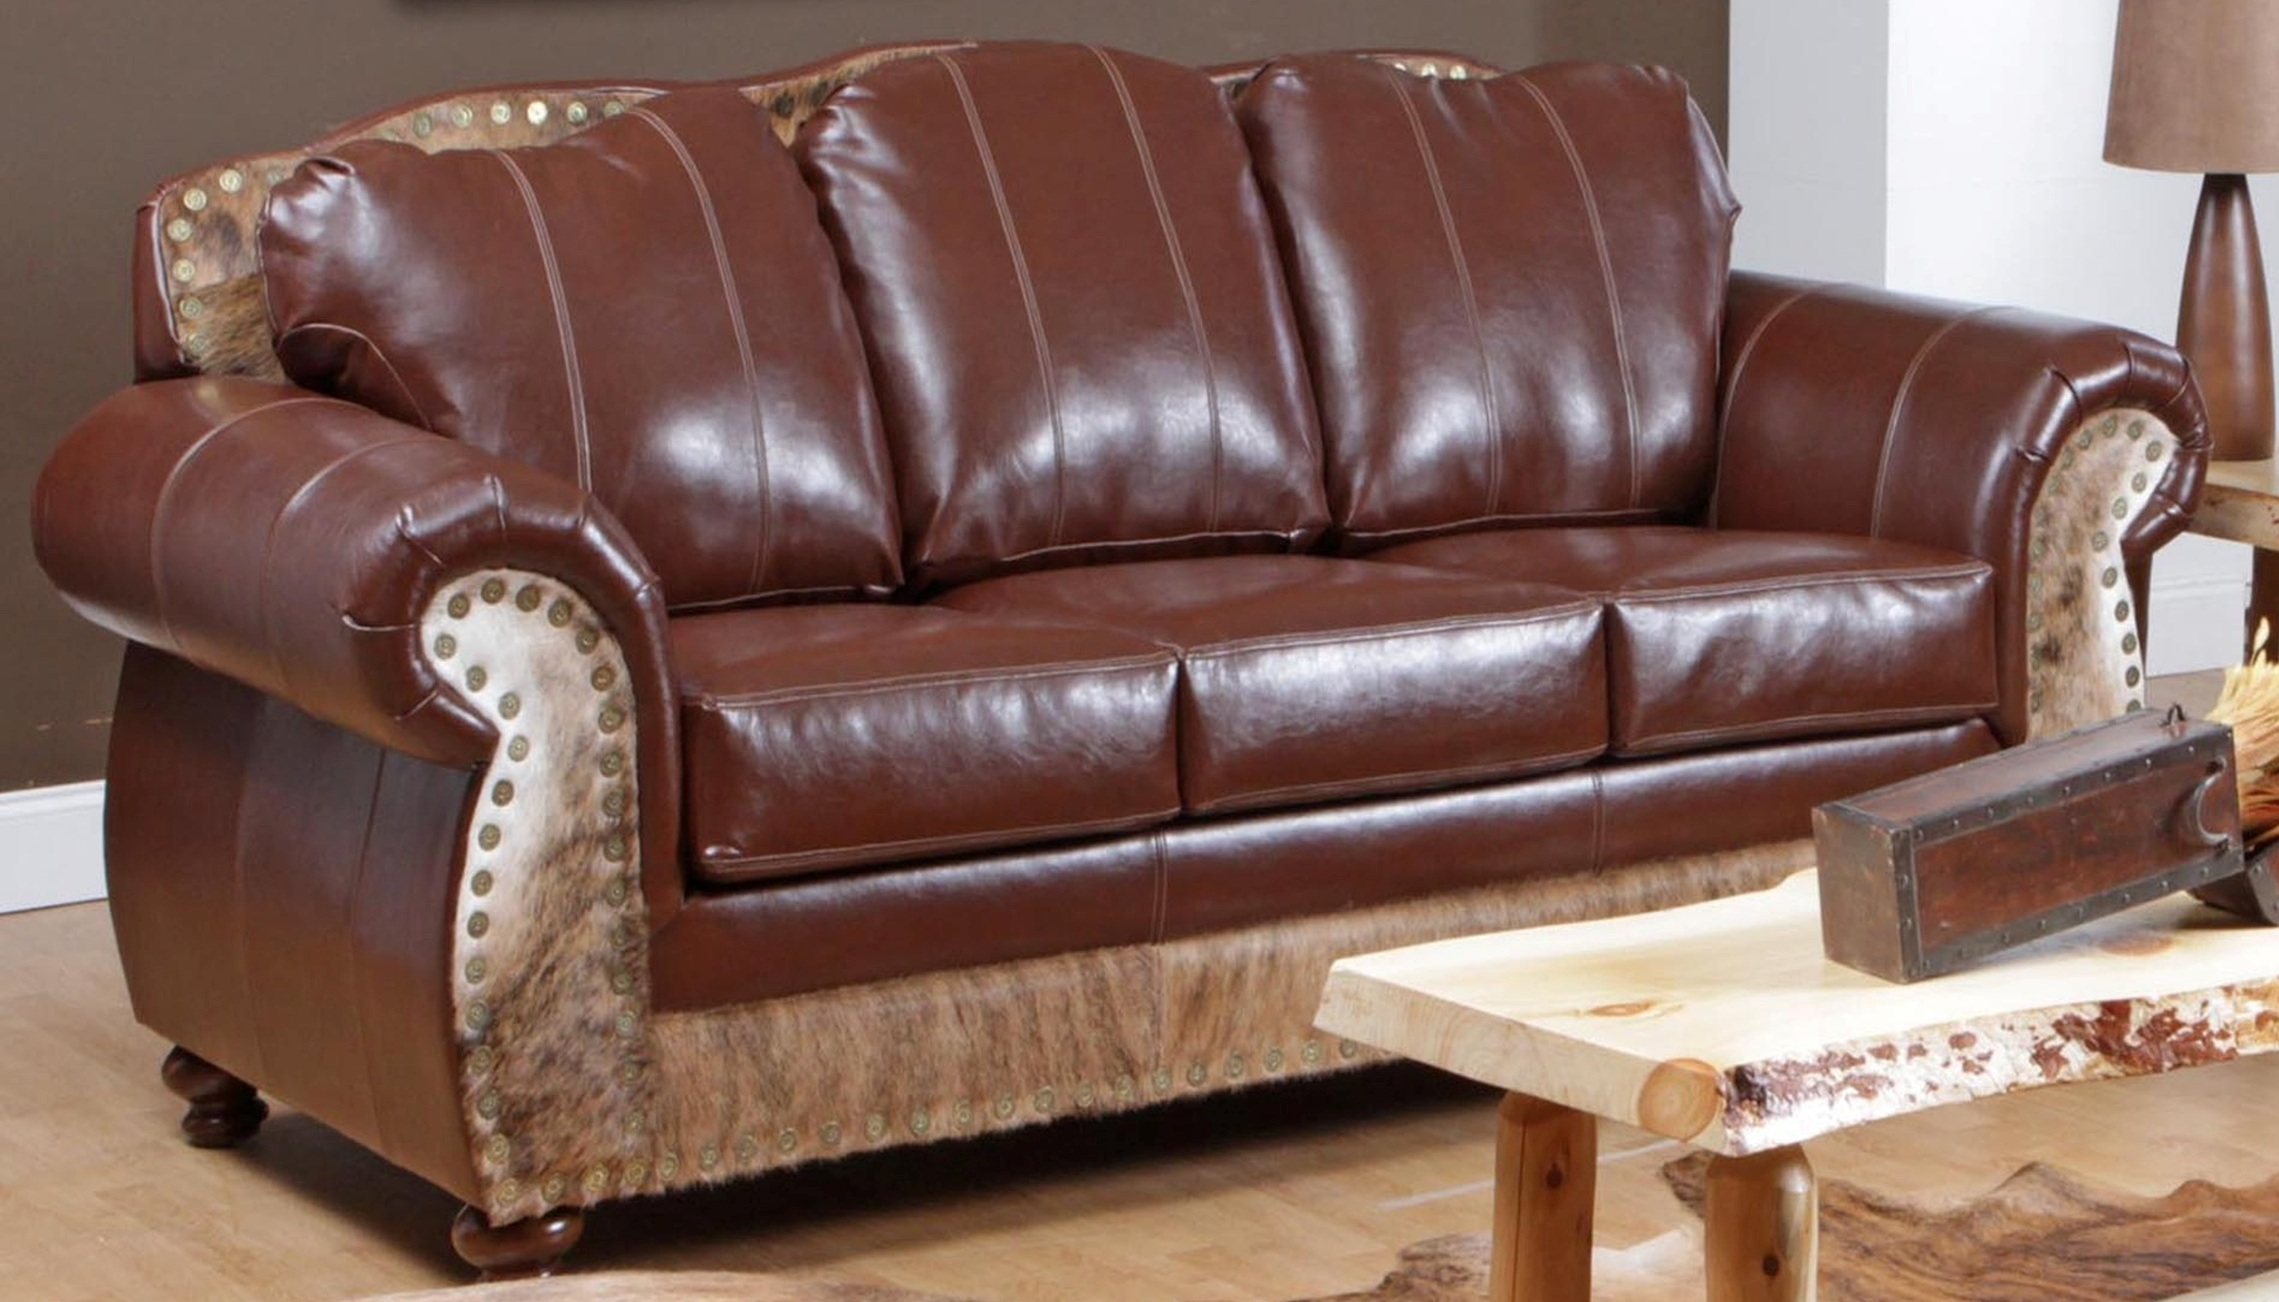 Saddle me up cowhide top grain leather sofa 5869 s for Chelsea leather sofa